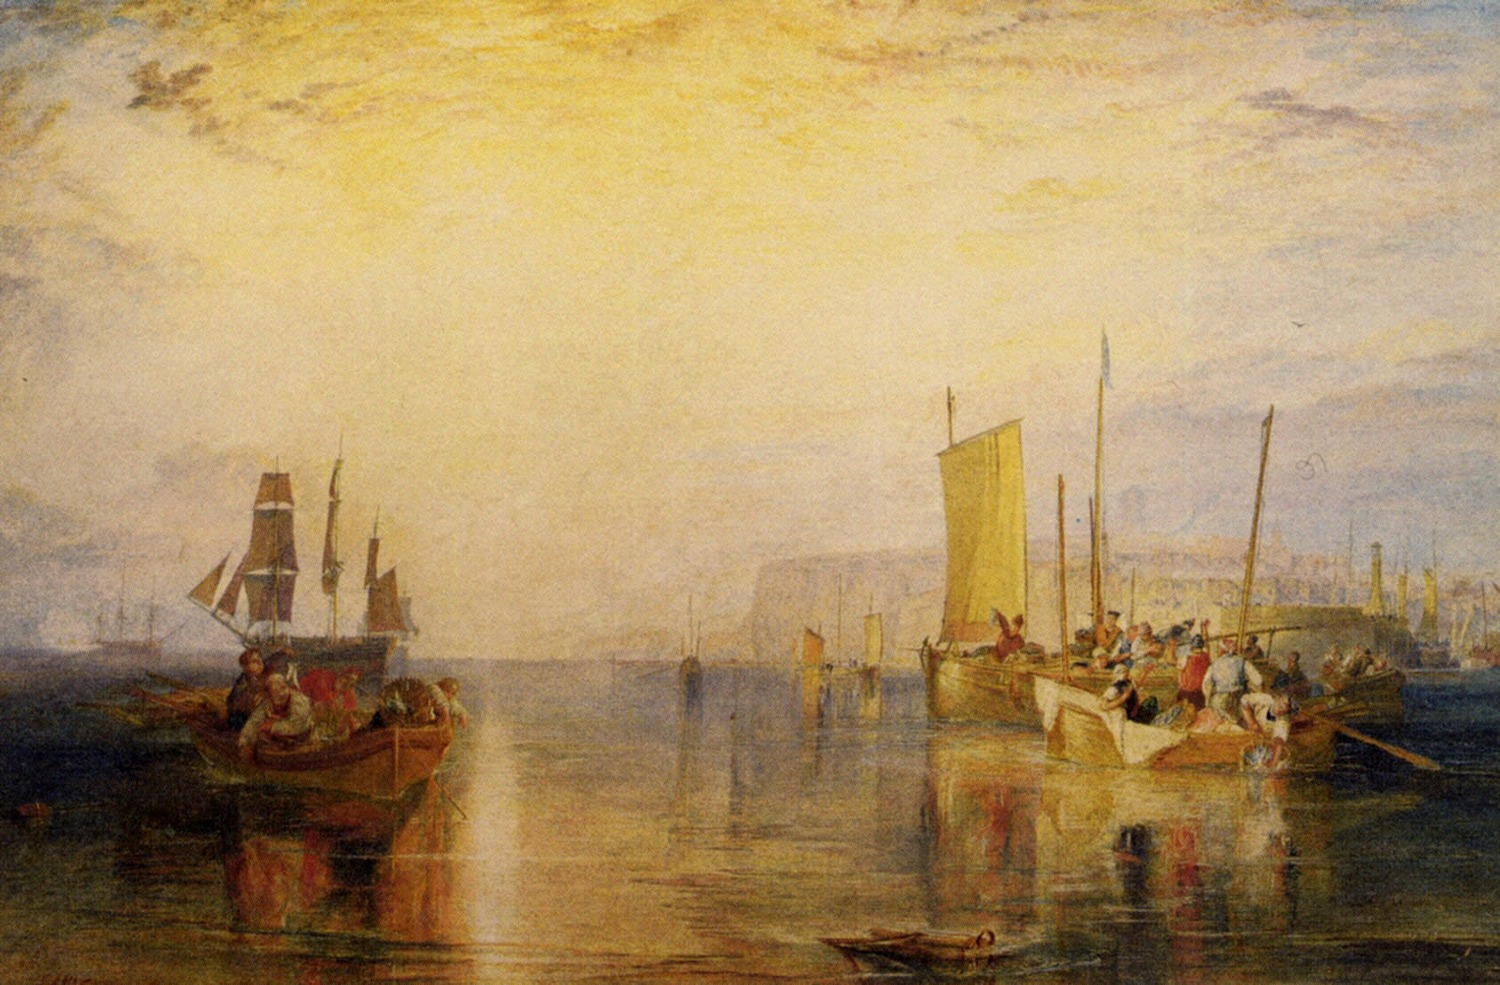 картина < Восход солнца. Ловля рыбы в Маргэте >:: Уильям Тёрнер ( William Turner ) - William Turner фото